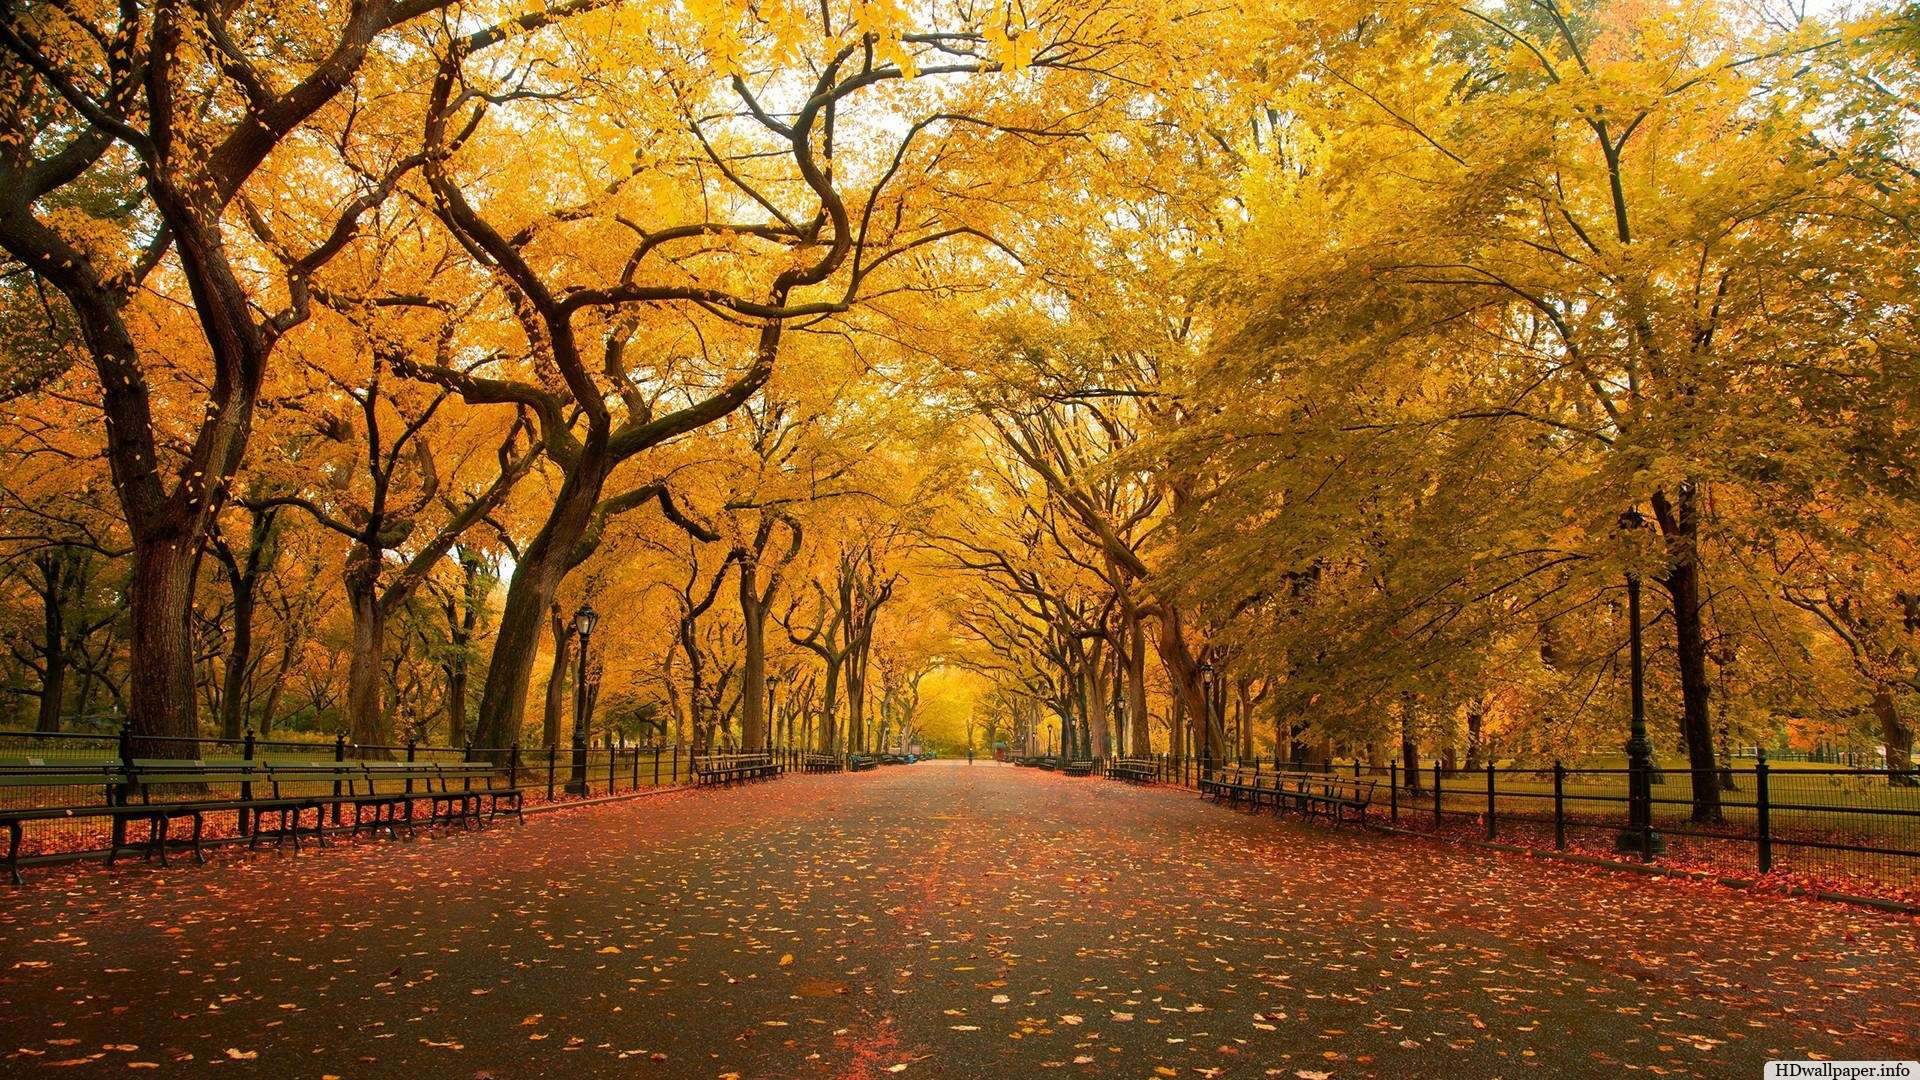 Fall Desktop Wallpaper Widescreen | HD Wallpapers